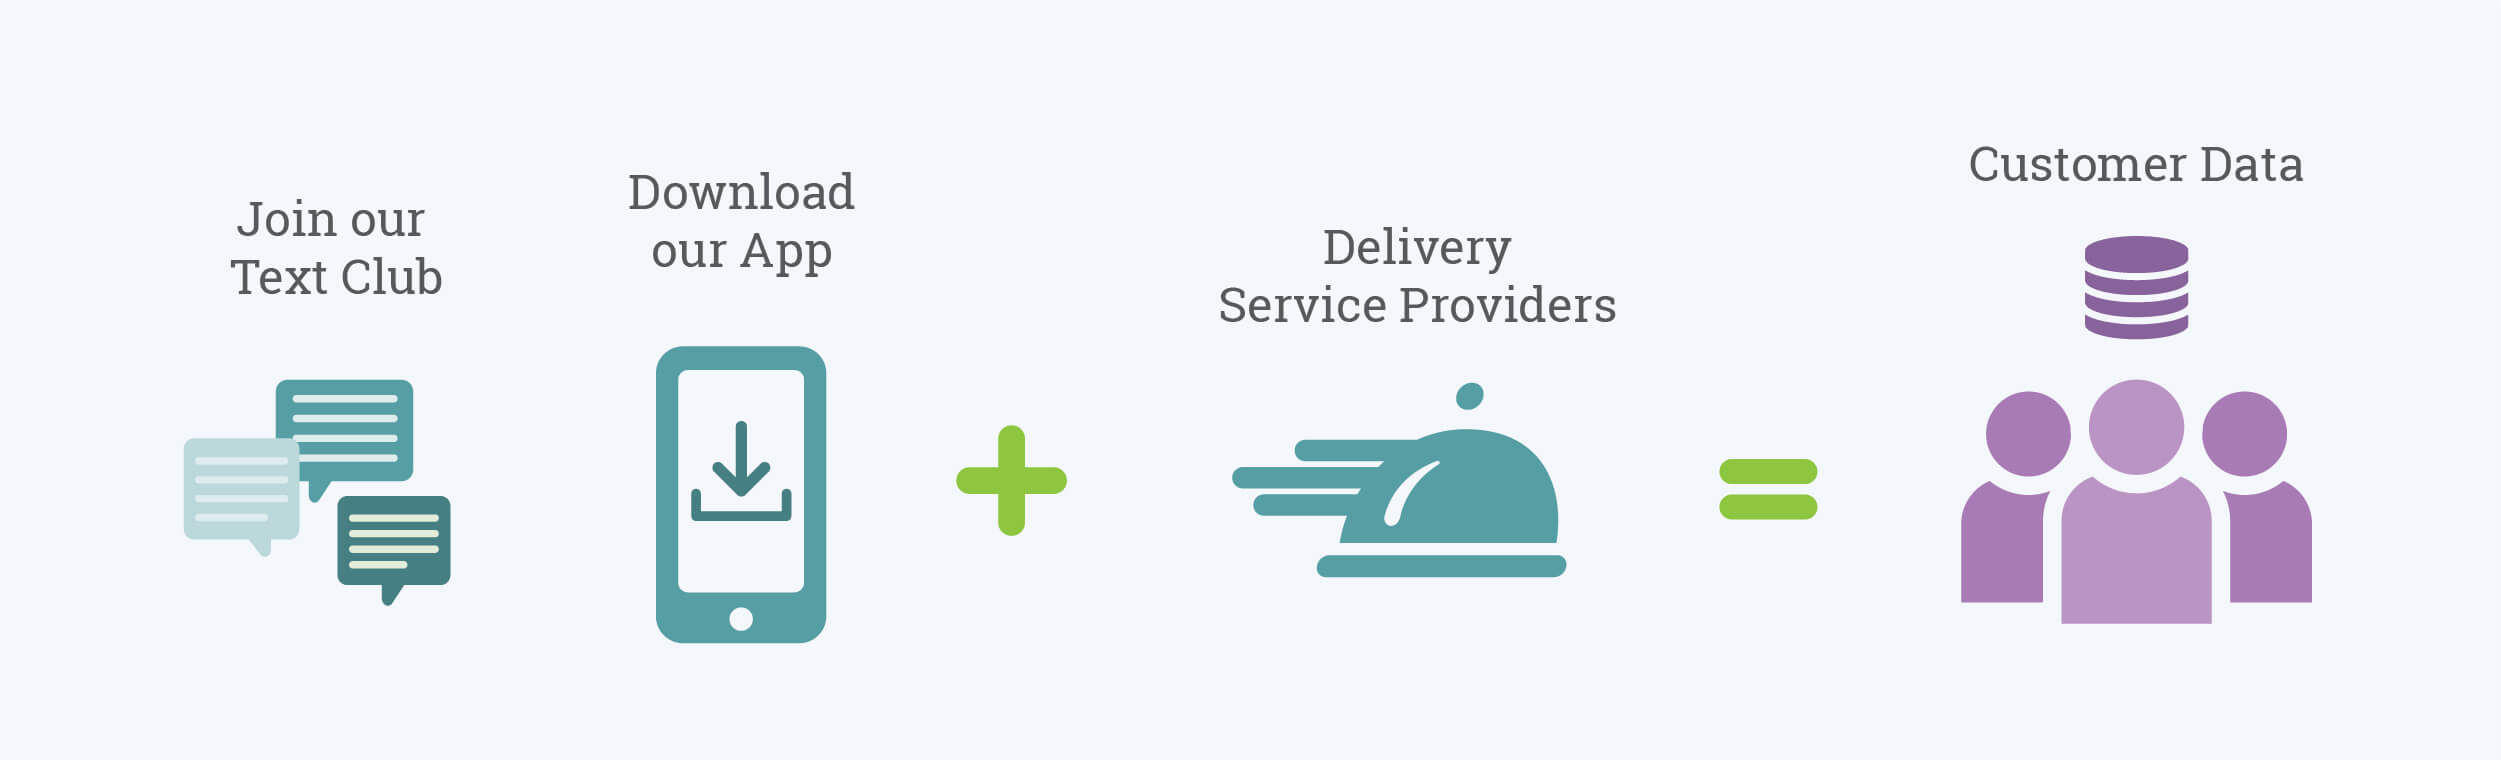 Converting Third Party Customers to First Party Customers